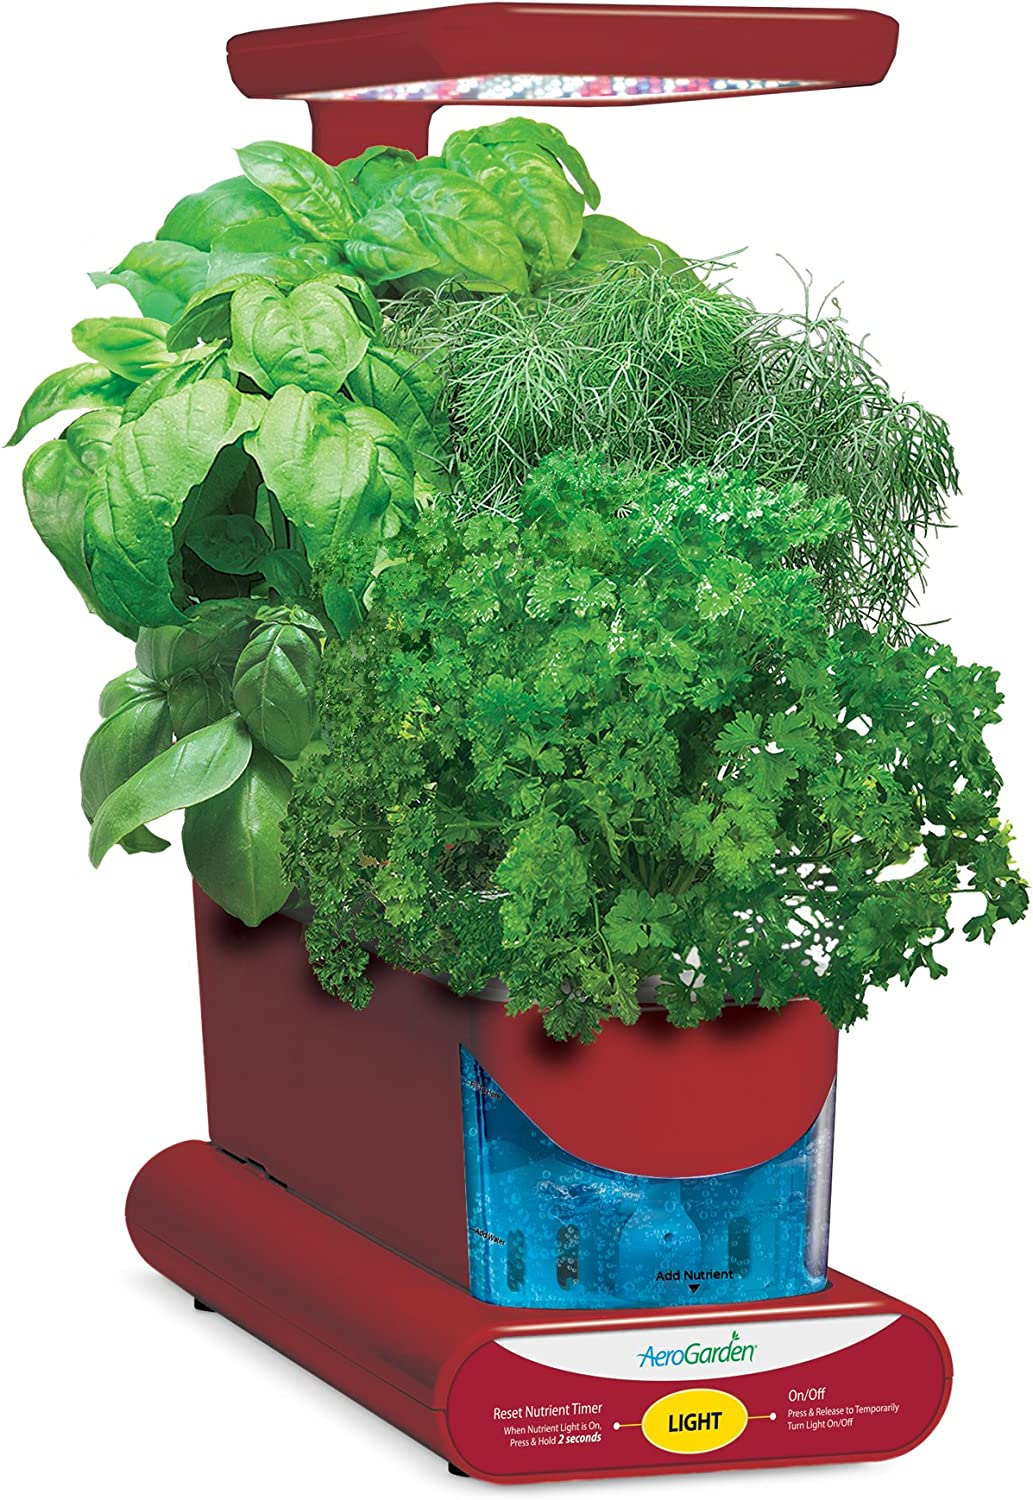 AeroGarden-Sprout-LED-with-Gourmet-Herb-Seed-Pod-Kit-Red